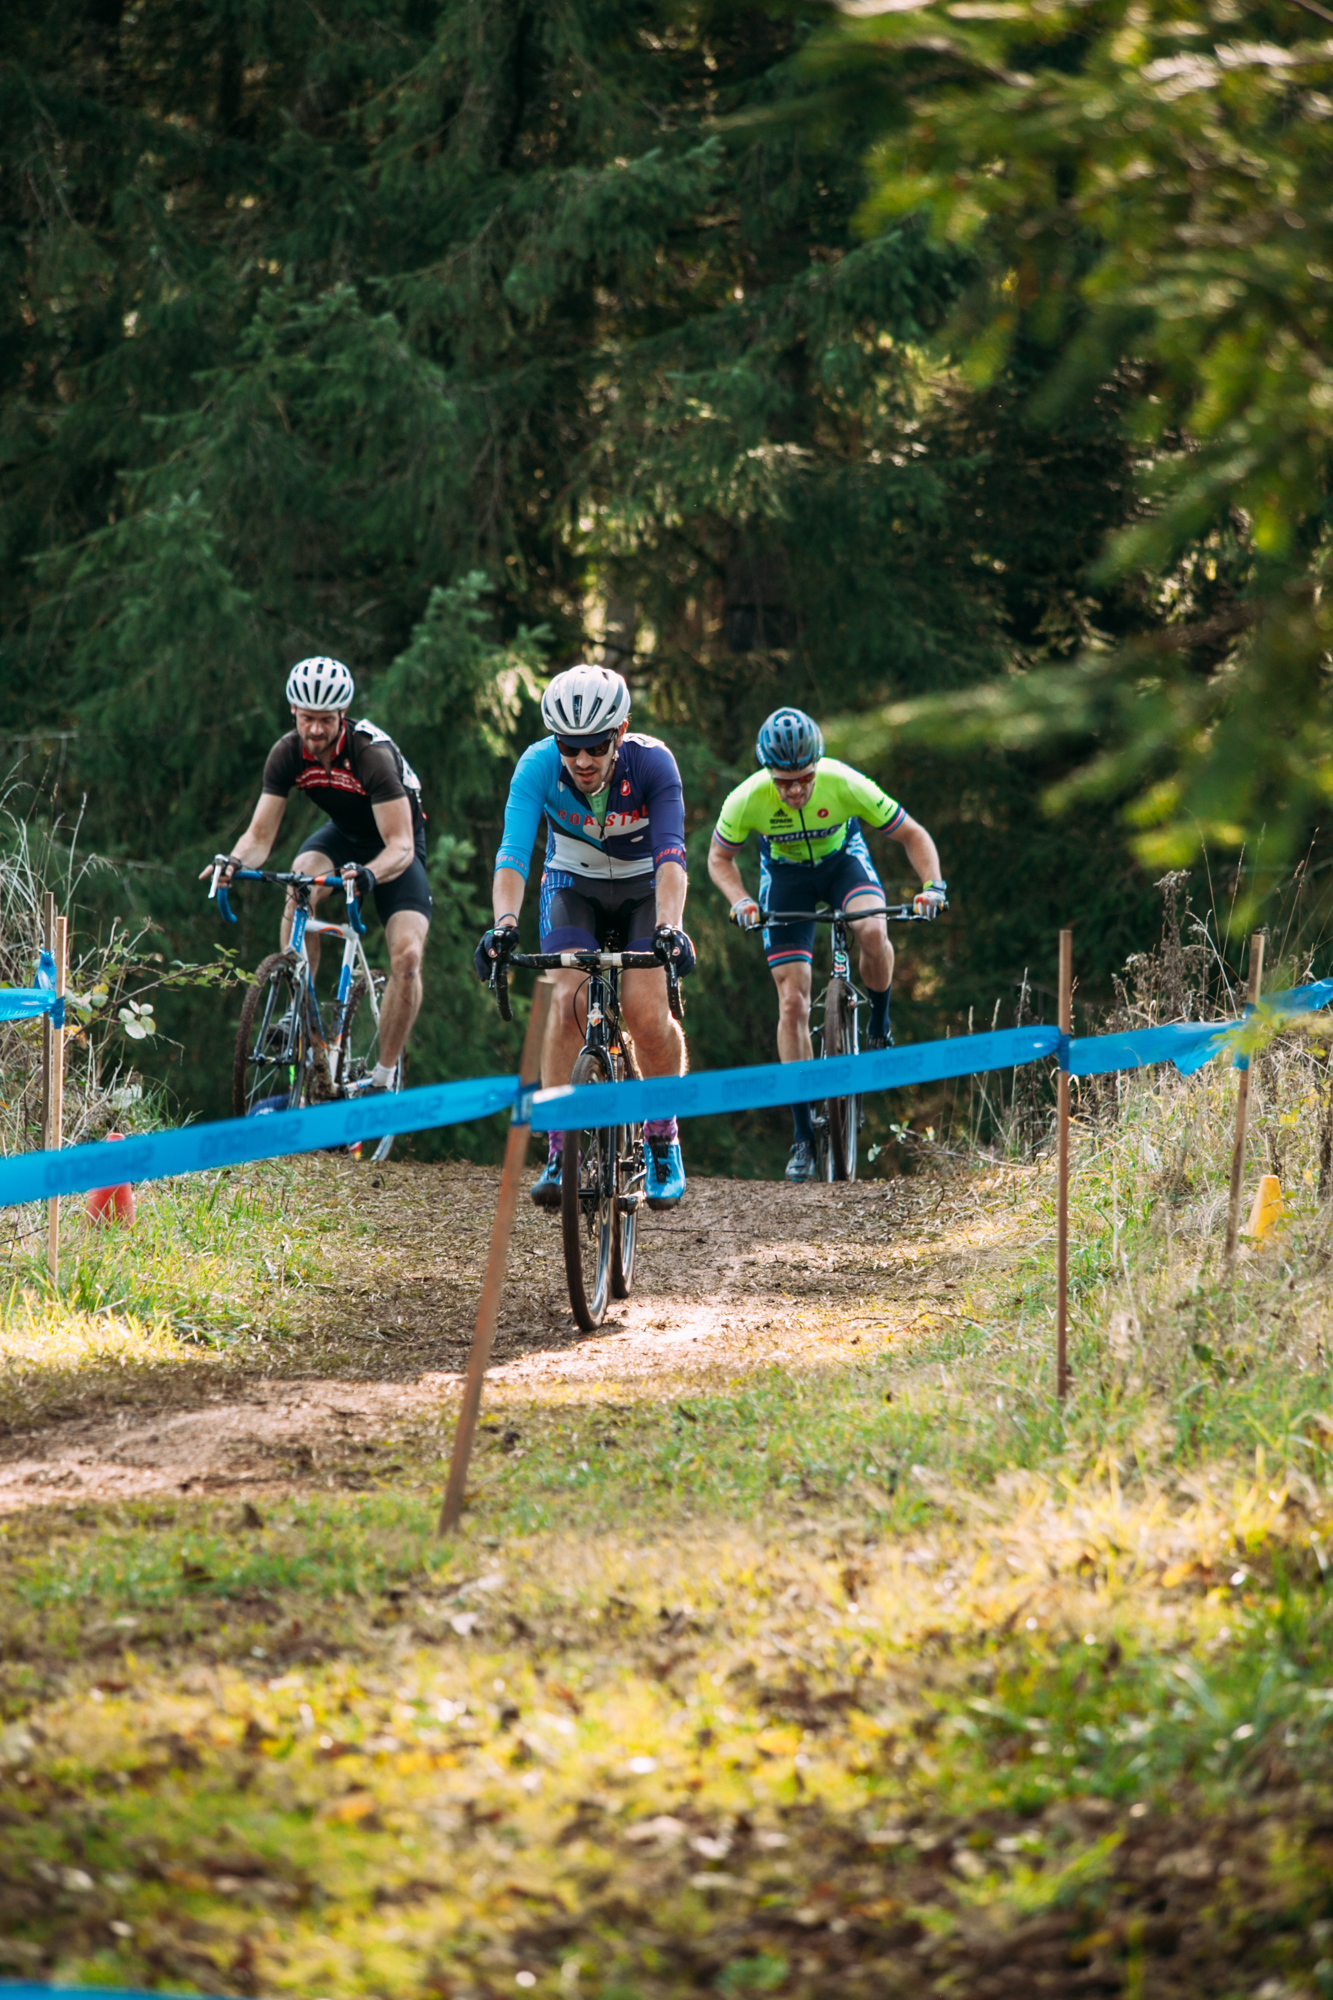 Cyclocross18_CCCX_RainierHS-141-mettlecycling.jpg